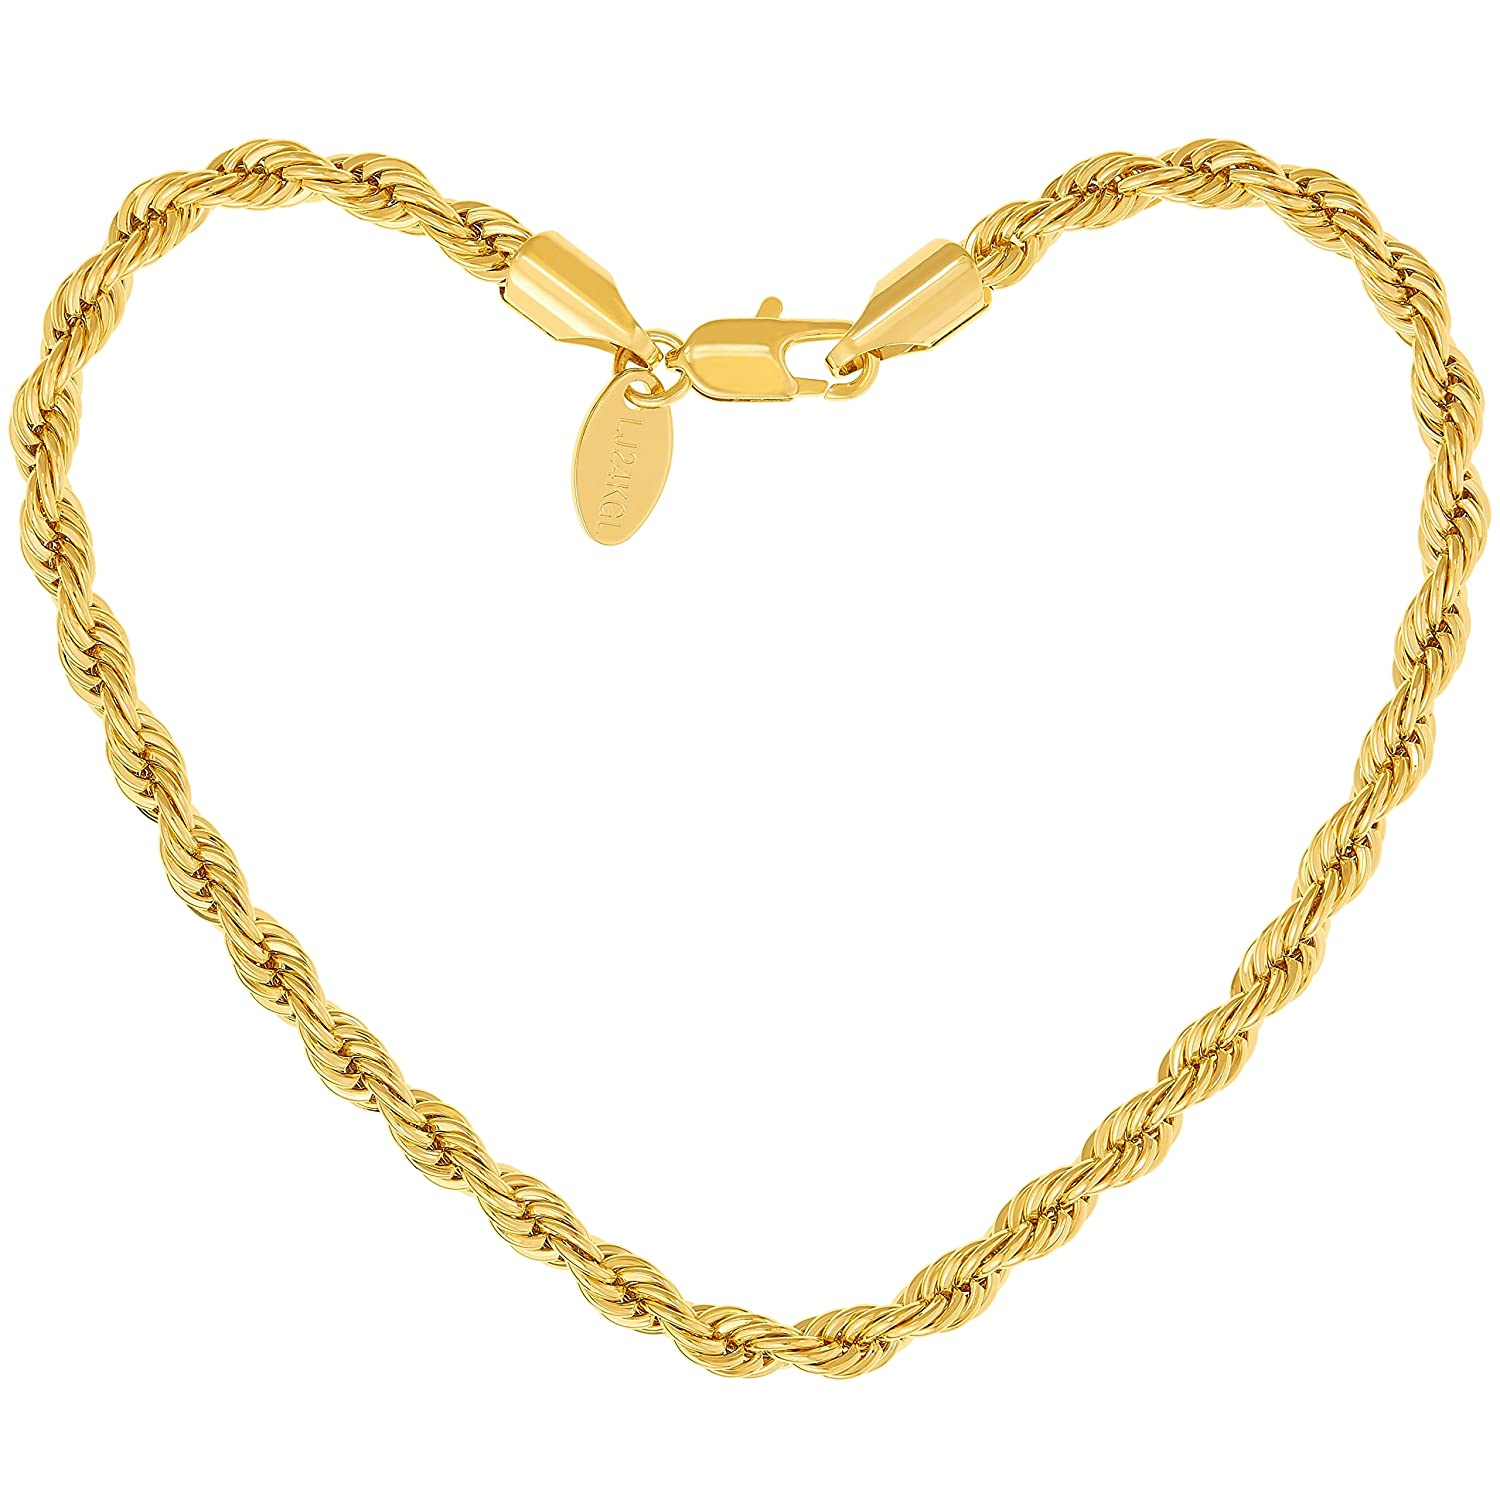 Lifetime Jewelry 5mm Rope Chain Gold Bracelet for Men and Women - Up to 20X More 24k Plating Than Other Plated Bracelets - Great Gift to Mom and Dad or Your Best Friends 7 8 and 9 inches Round 24K Gold with Inlaid Bronze Premium Fashion Jewelry Guaranteed